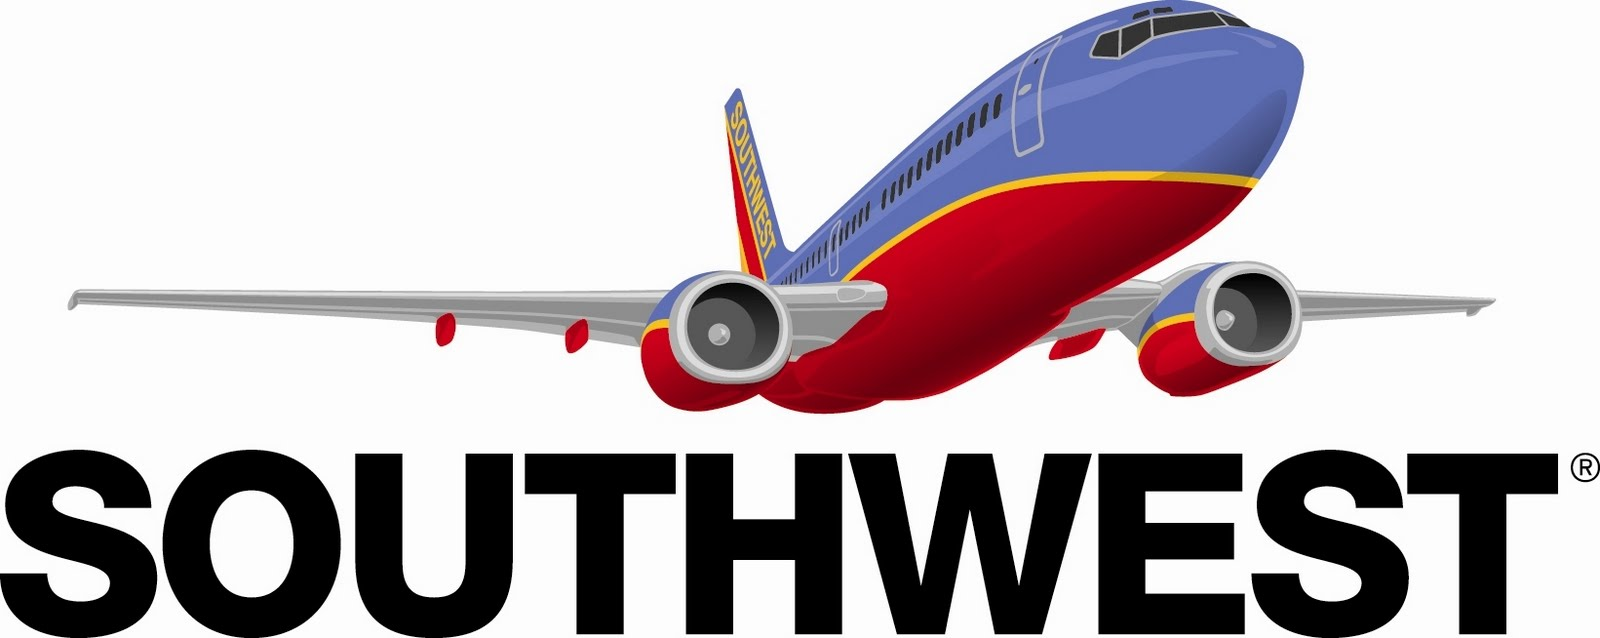 southwest-airlines-slogan.jpg